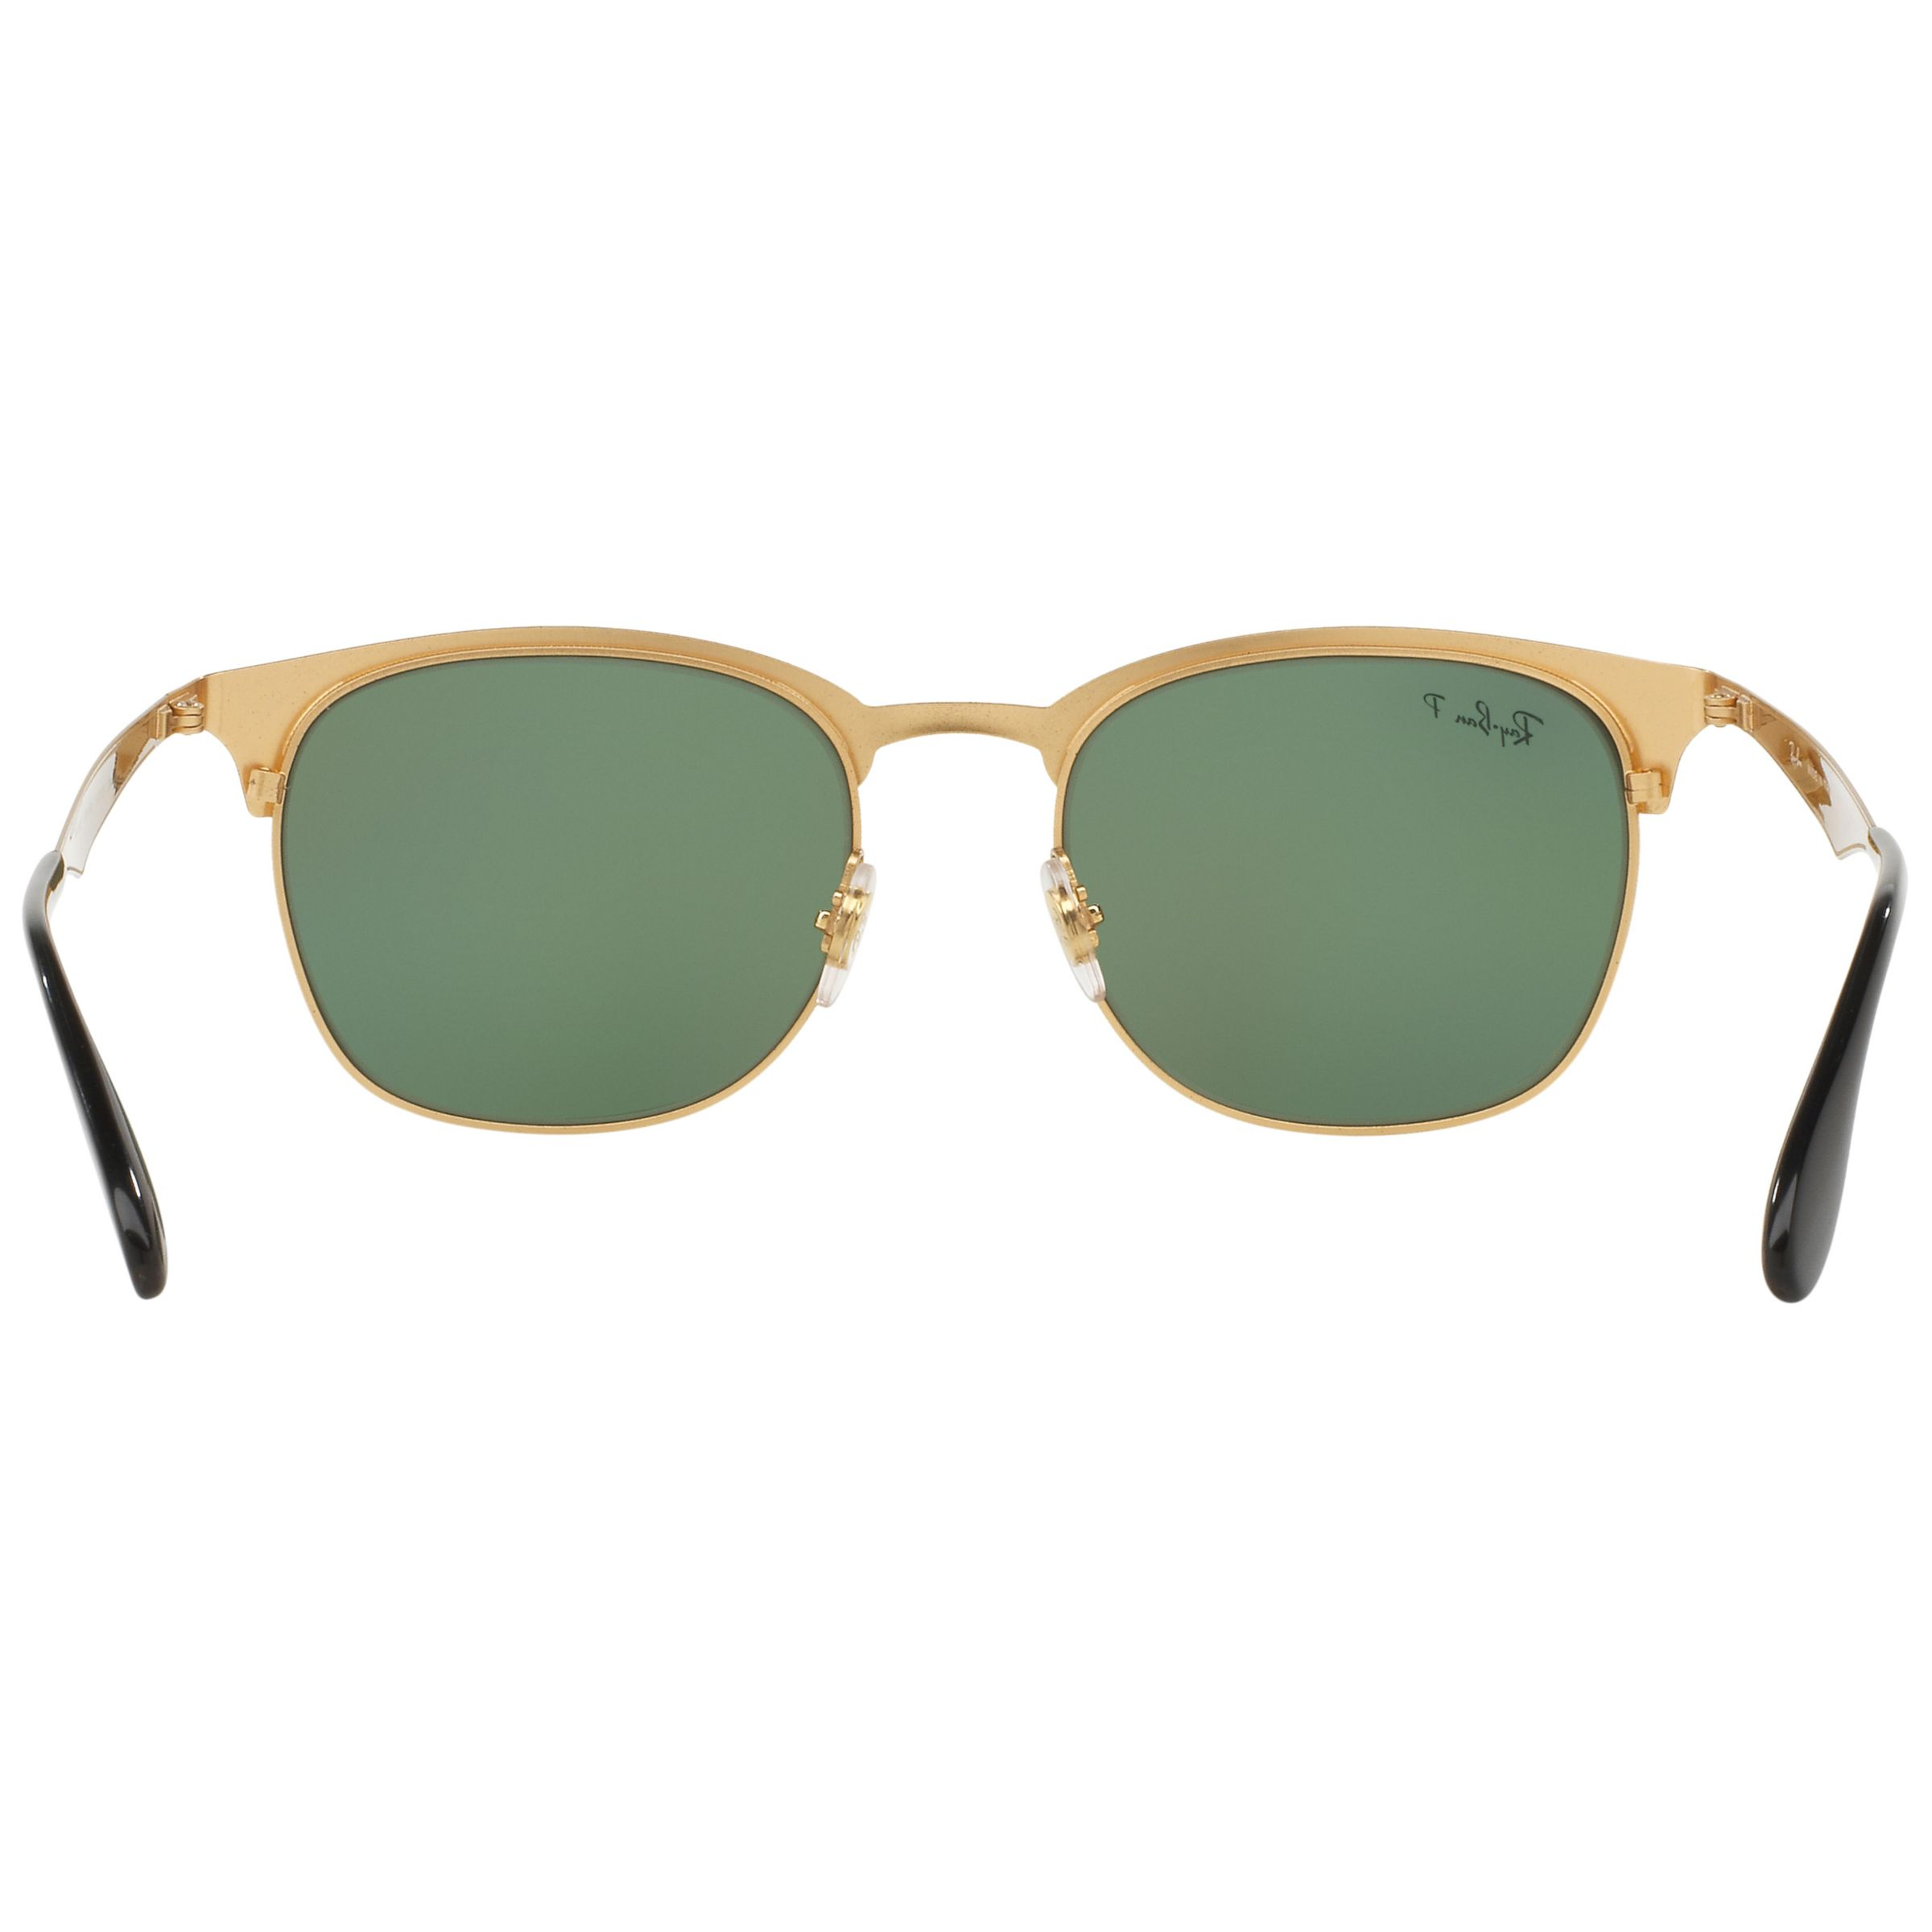 Half Frame Square Glasses : Buy Ray-Ban RB3538 Half Frame Polarised Square Sunglasses ...